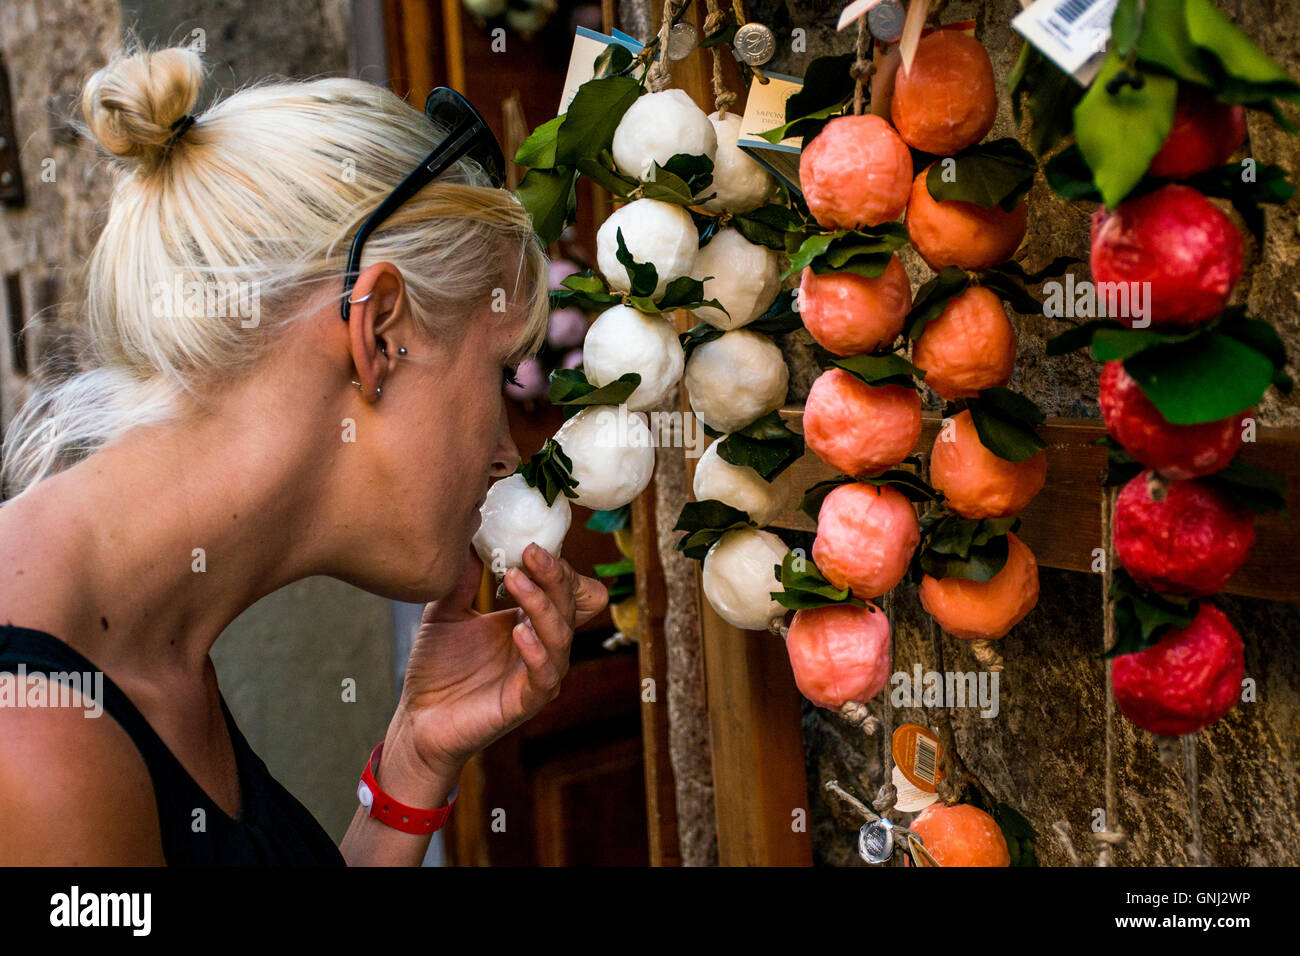 Girl smelling handmade soap in italy tuscany - Stock Image